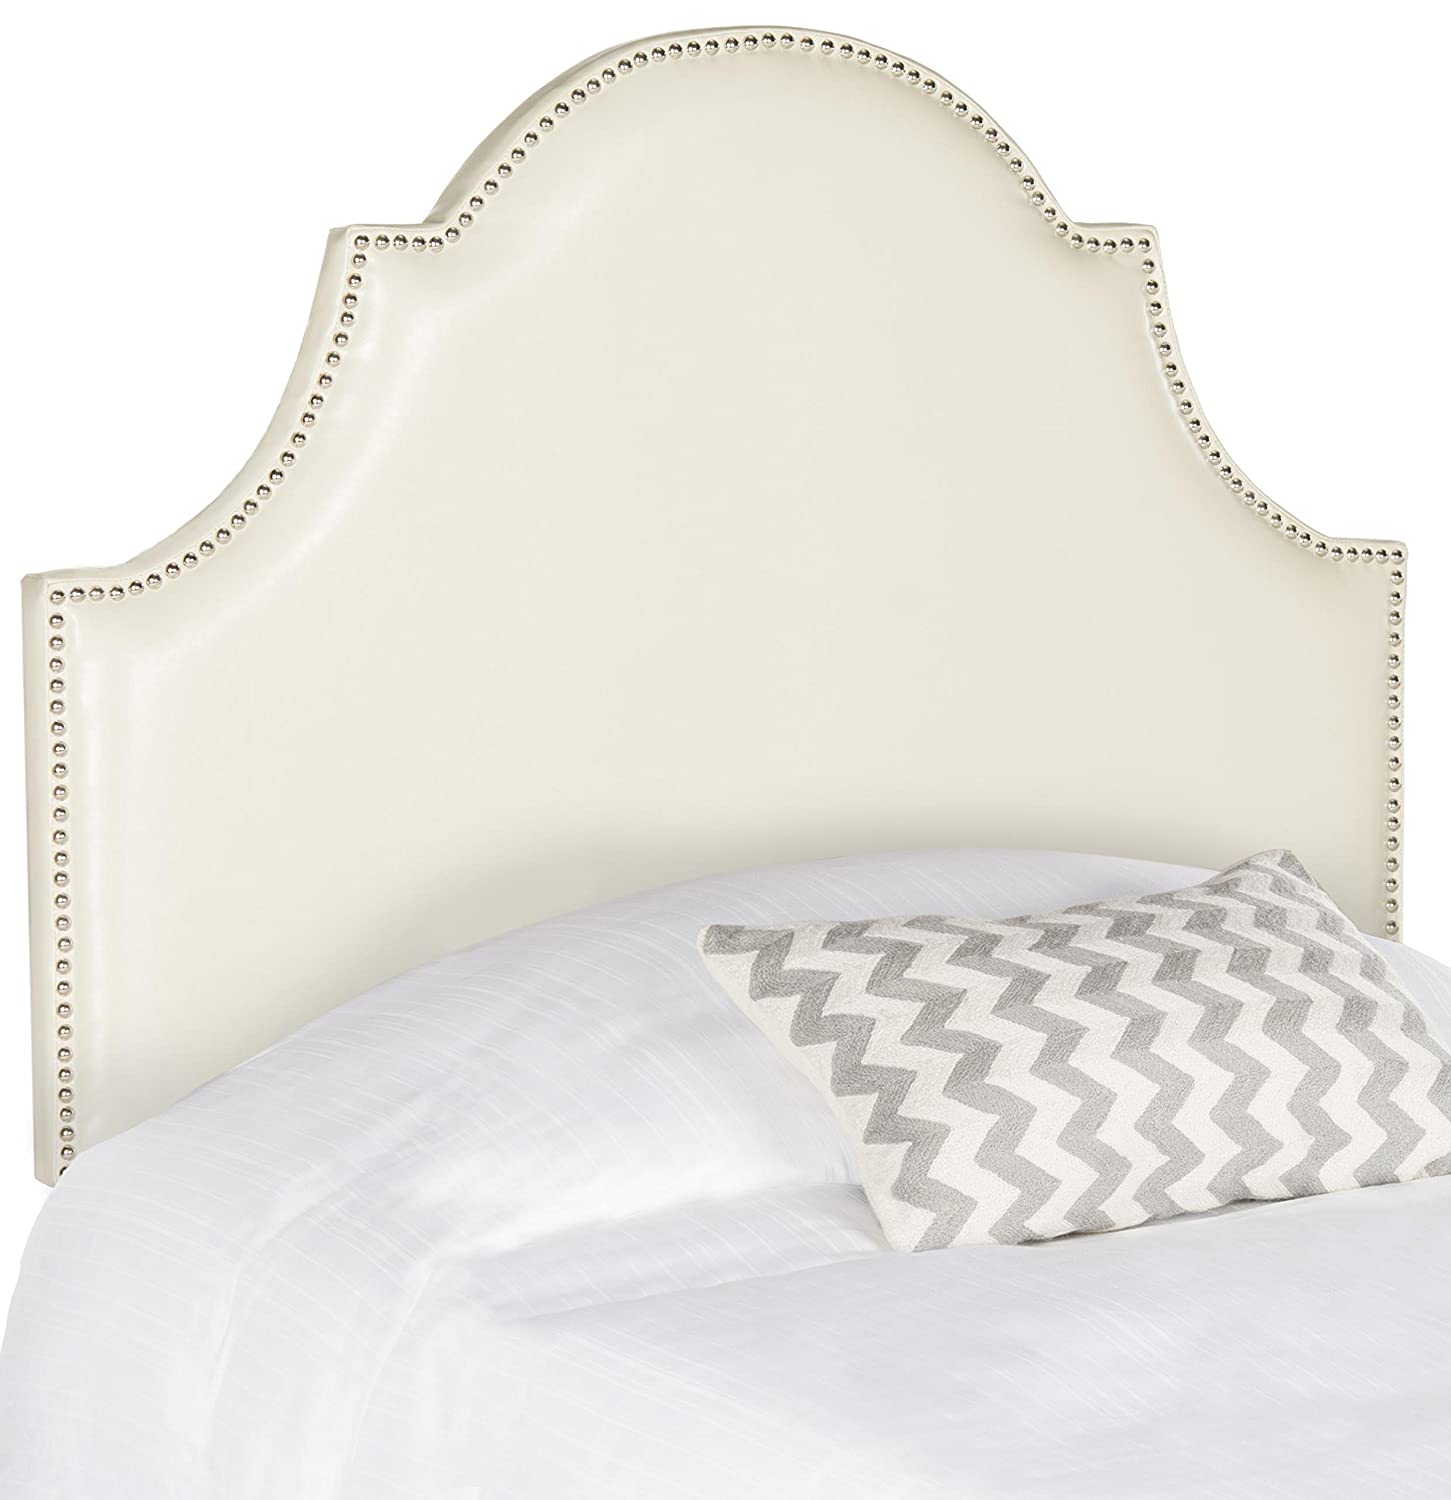 Flat Cream Twin Safavieh Hallmar Wedgwood bluee Upholstered Arched Headboard - Silver Nailhead (Queen)